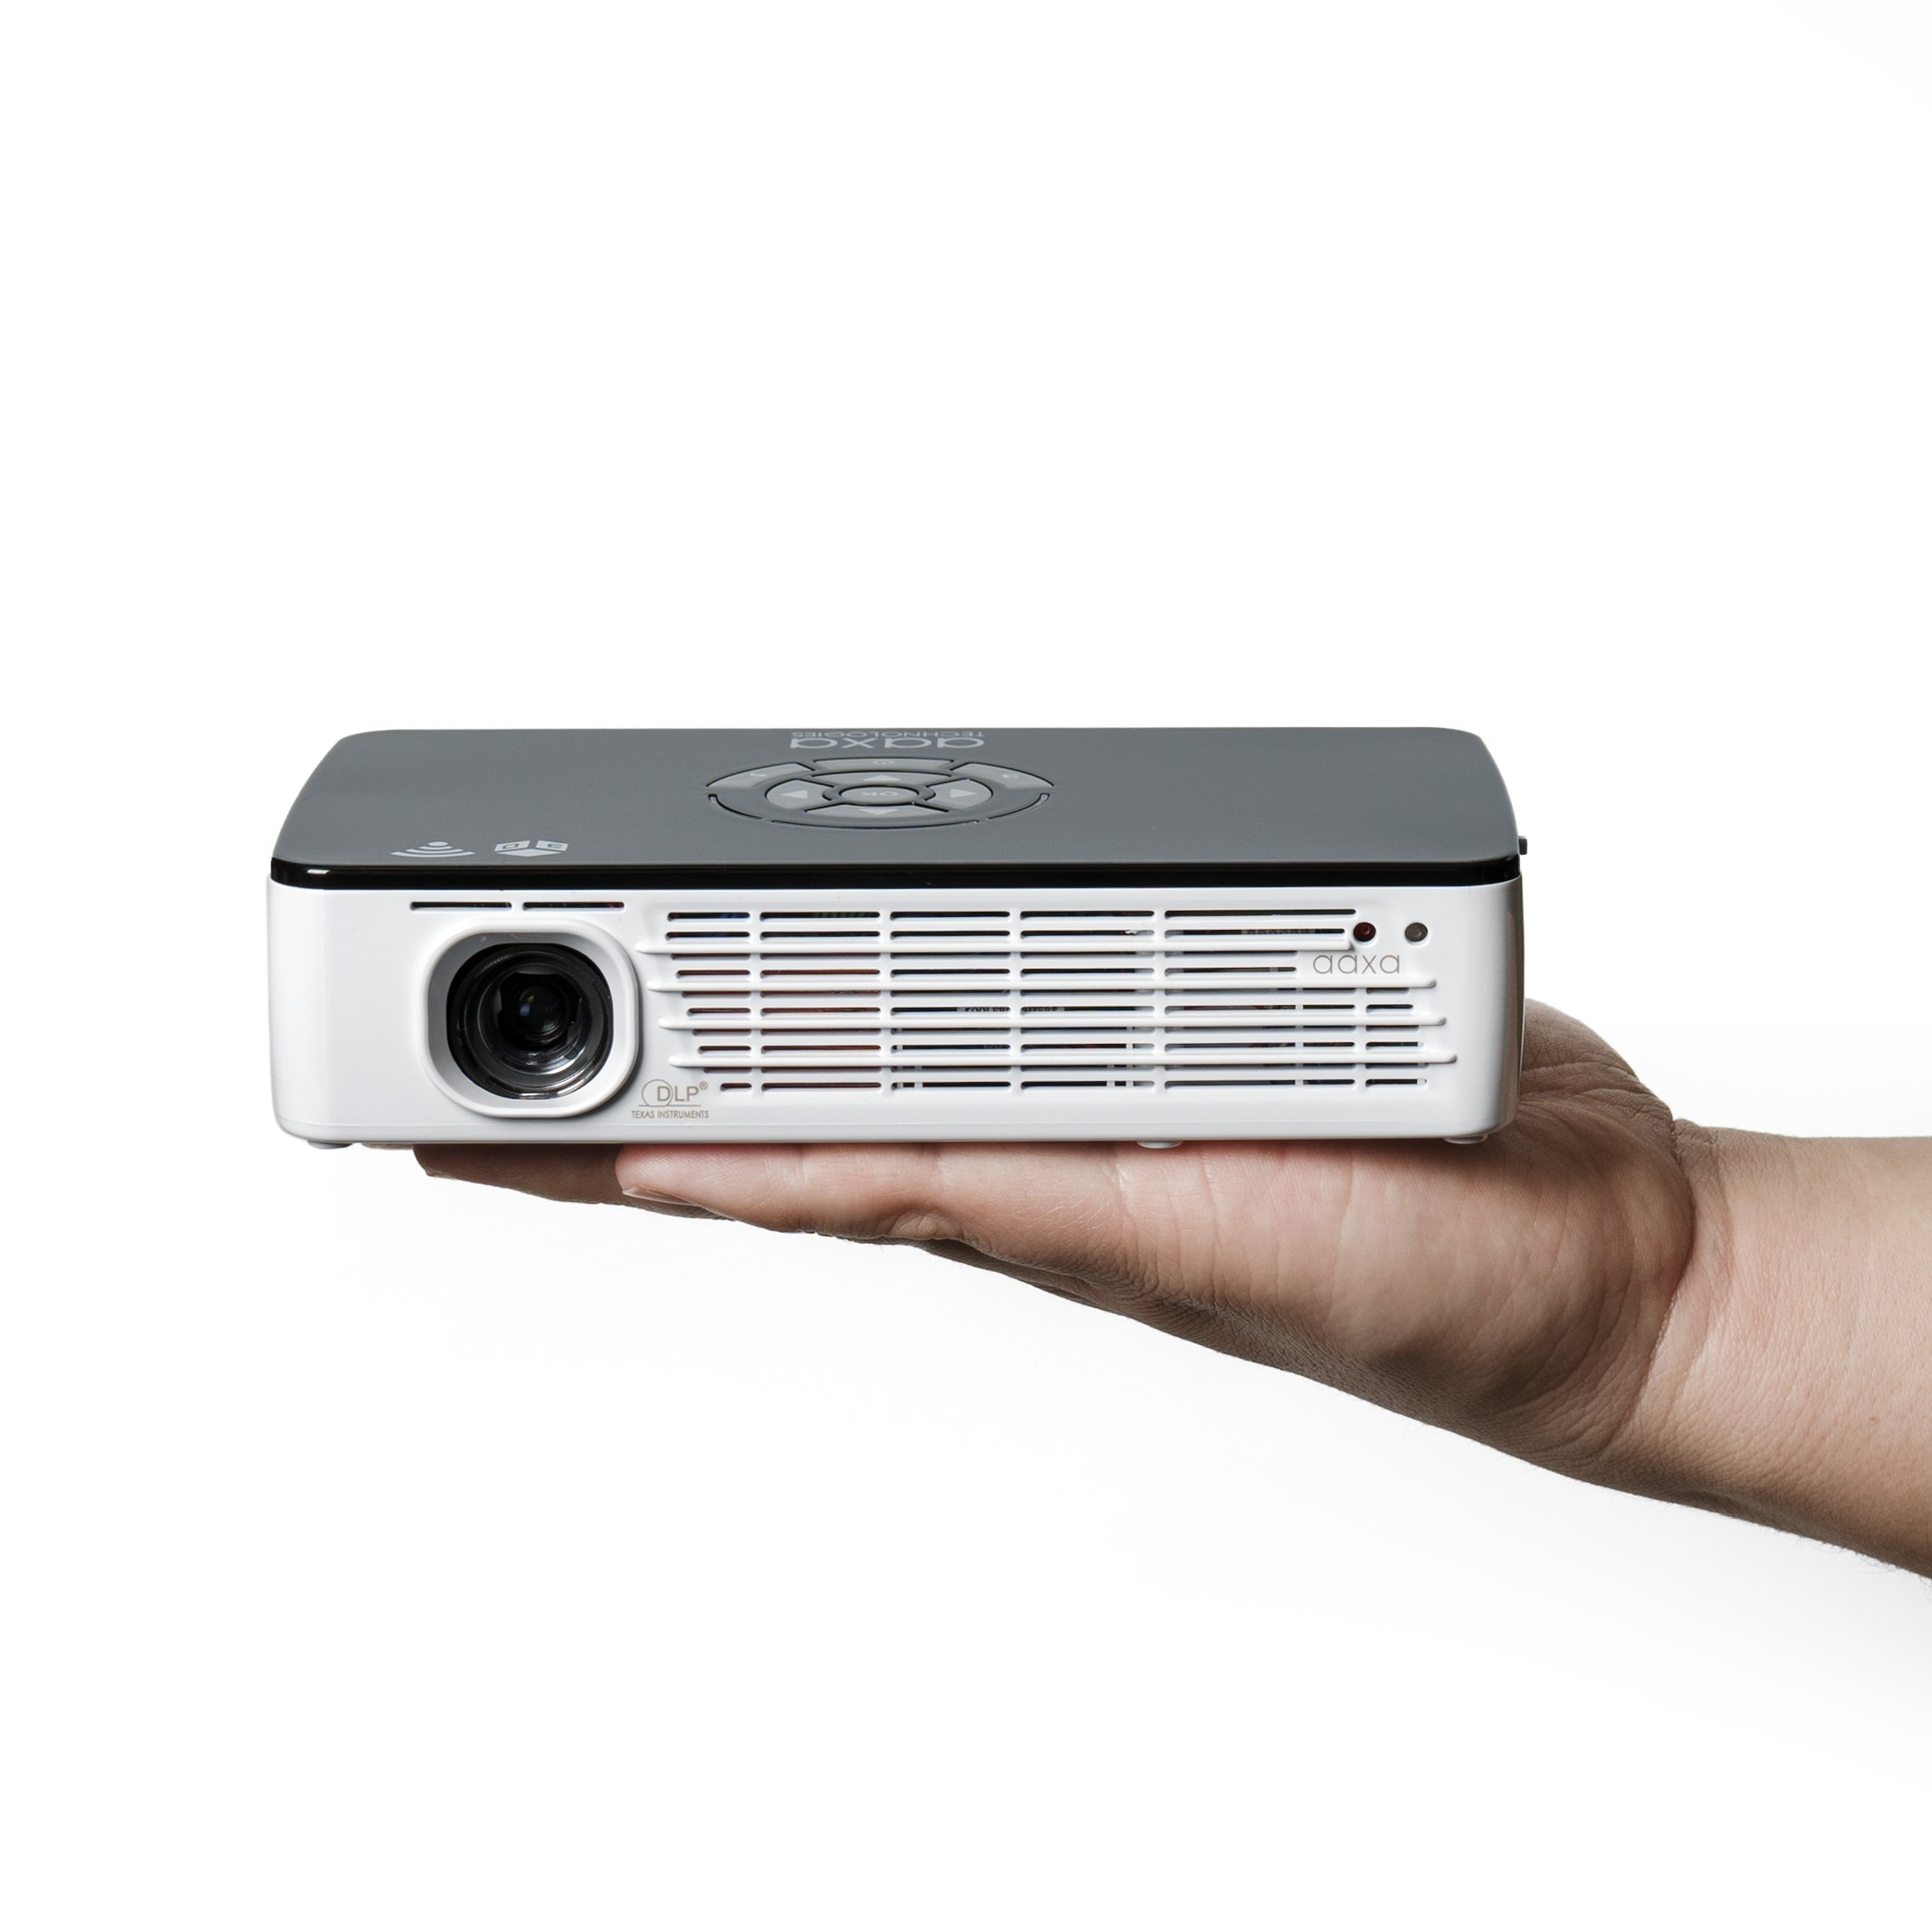 AAXA P700 Pro Pico Projector with 70 Minute Battery, 650 Lumens, Android OS, WXGA Native HD Resolution, Office Viewer, Wi-Fi/Bluetooth/3D Onboard, Video Streaming